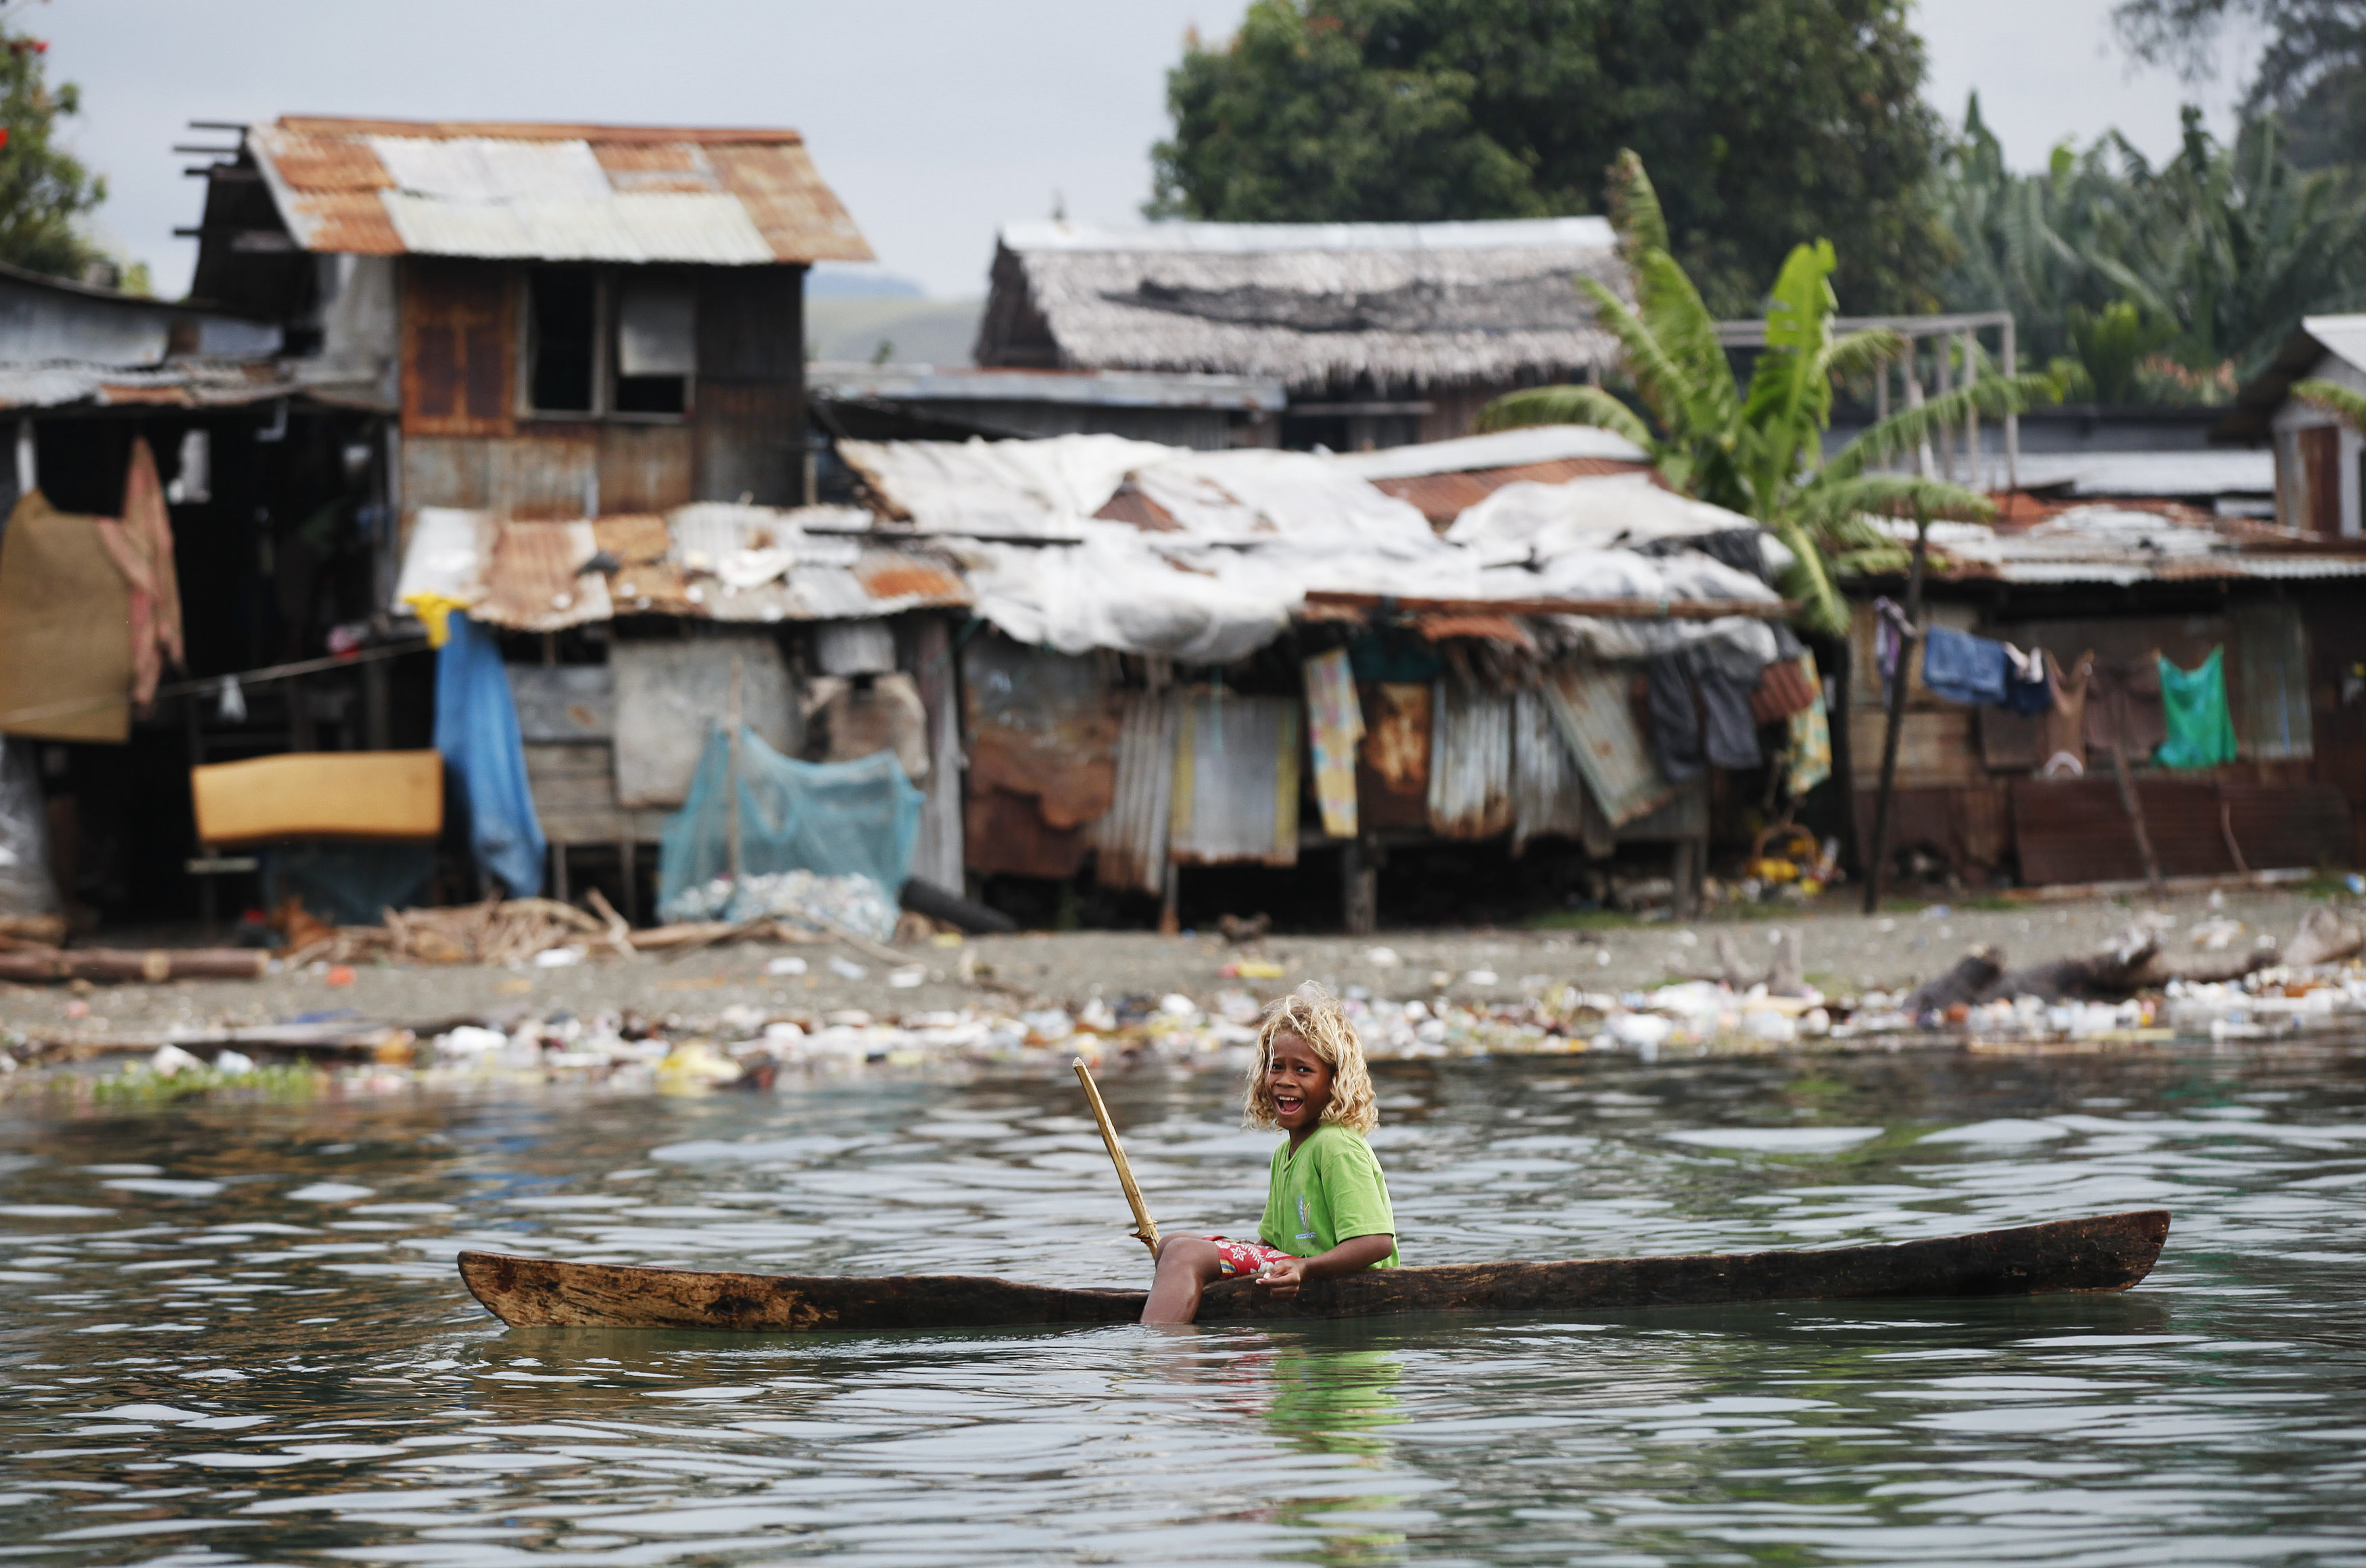 A girl fishes on her boat at a polluted beach in central Honiara September 14, 2012. The Duke and Duchess of Cambridge will visit Solomon Islands on behalf of Queen Elizabeth II to commemorate her Diamond Jubilee on September 16. REUTERS/Daniel Munoz (SOLOMON ISLANDS - Tags: SOCIETY TPX IMAGES OF THE DAY) - RTR37Z2Q